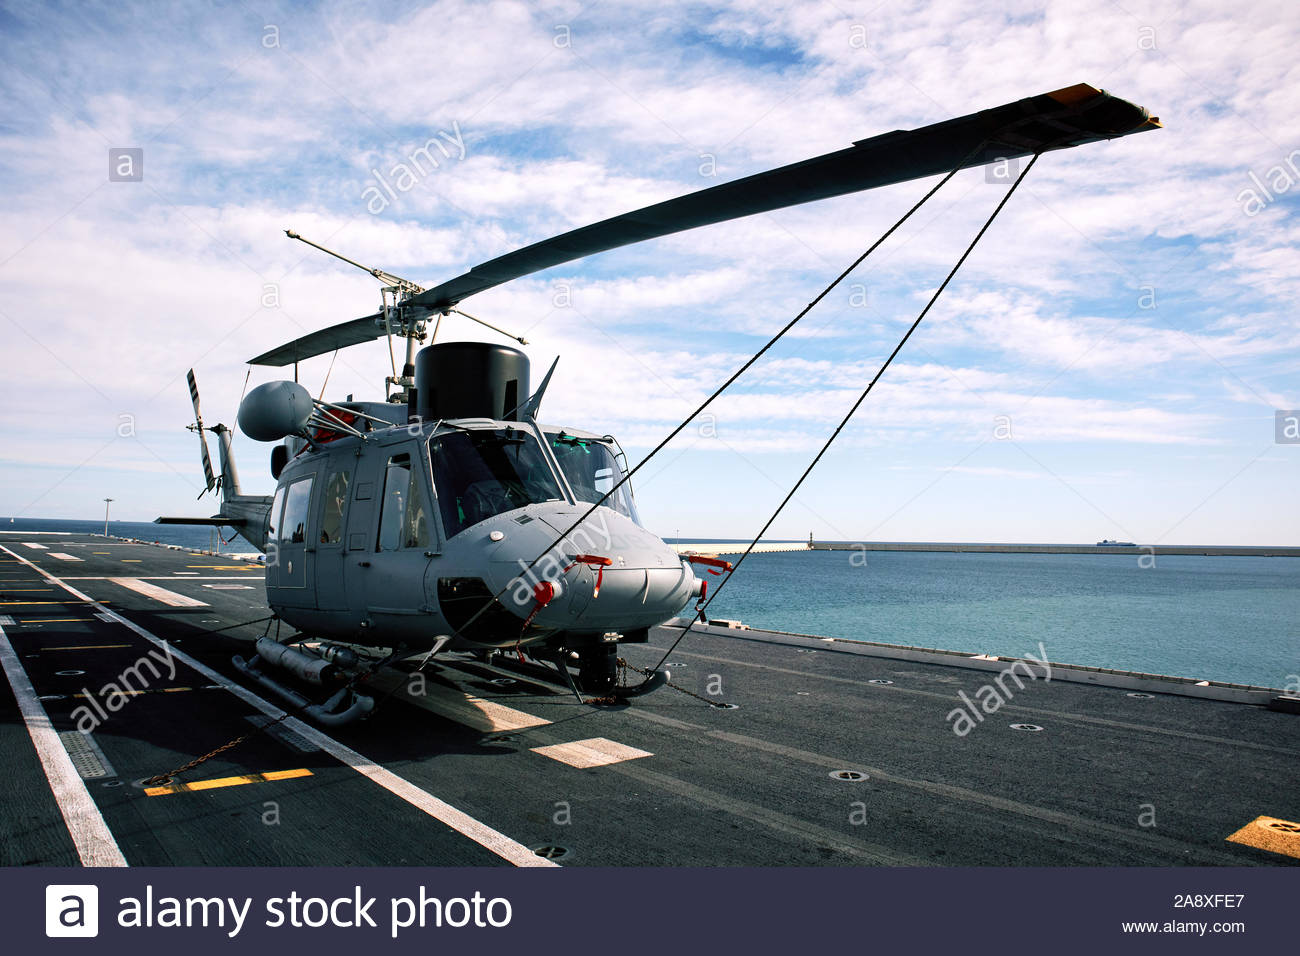 VALENCIA, SPAIN - NOVEMBER 2019: Helicopter on the deck of the ship Juan Carlos I (L-61), an amphibious assault ship of greater size and tonnage than Stock Photo